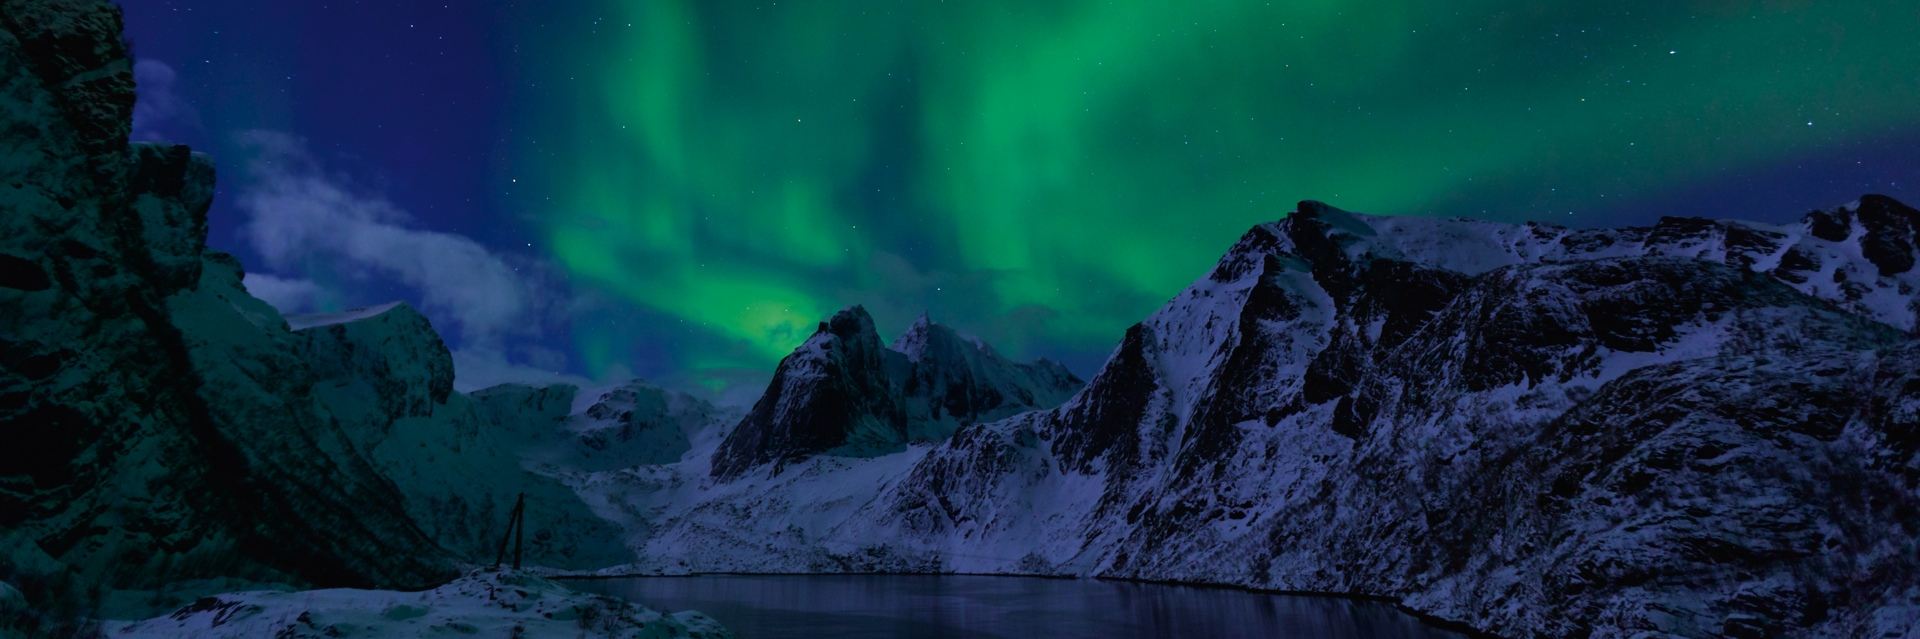 Norwegian Whale Watching & Northern Lights voyage